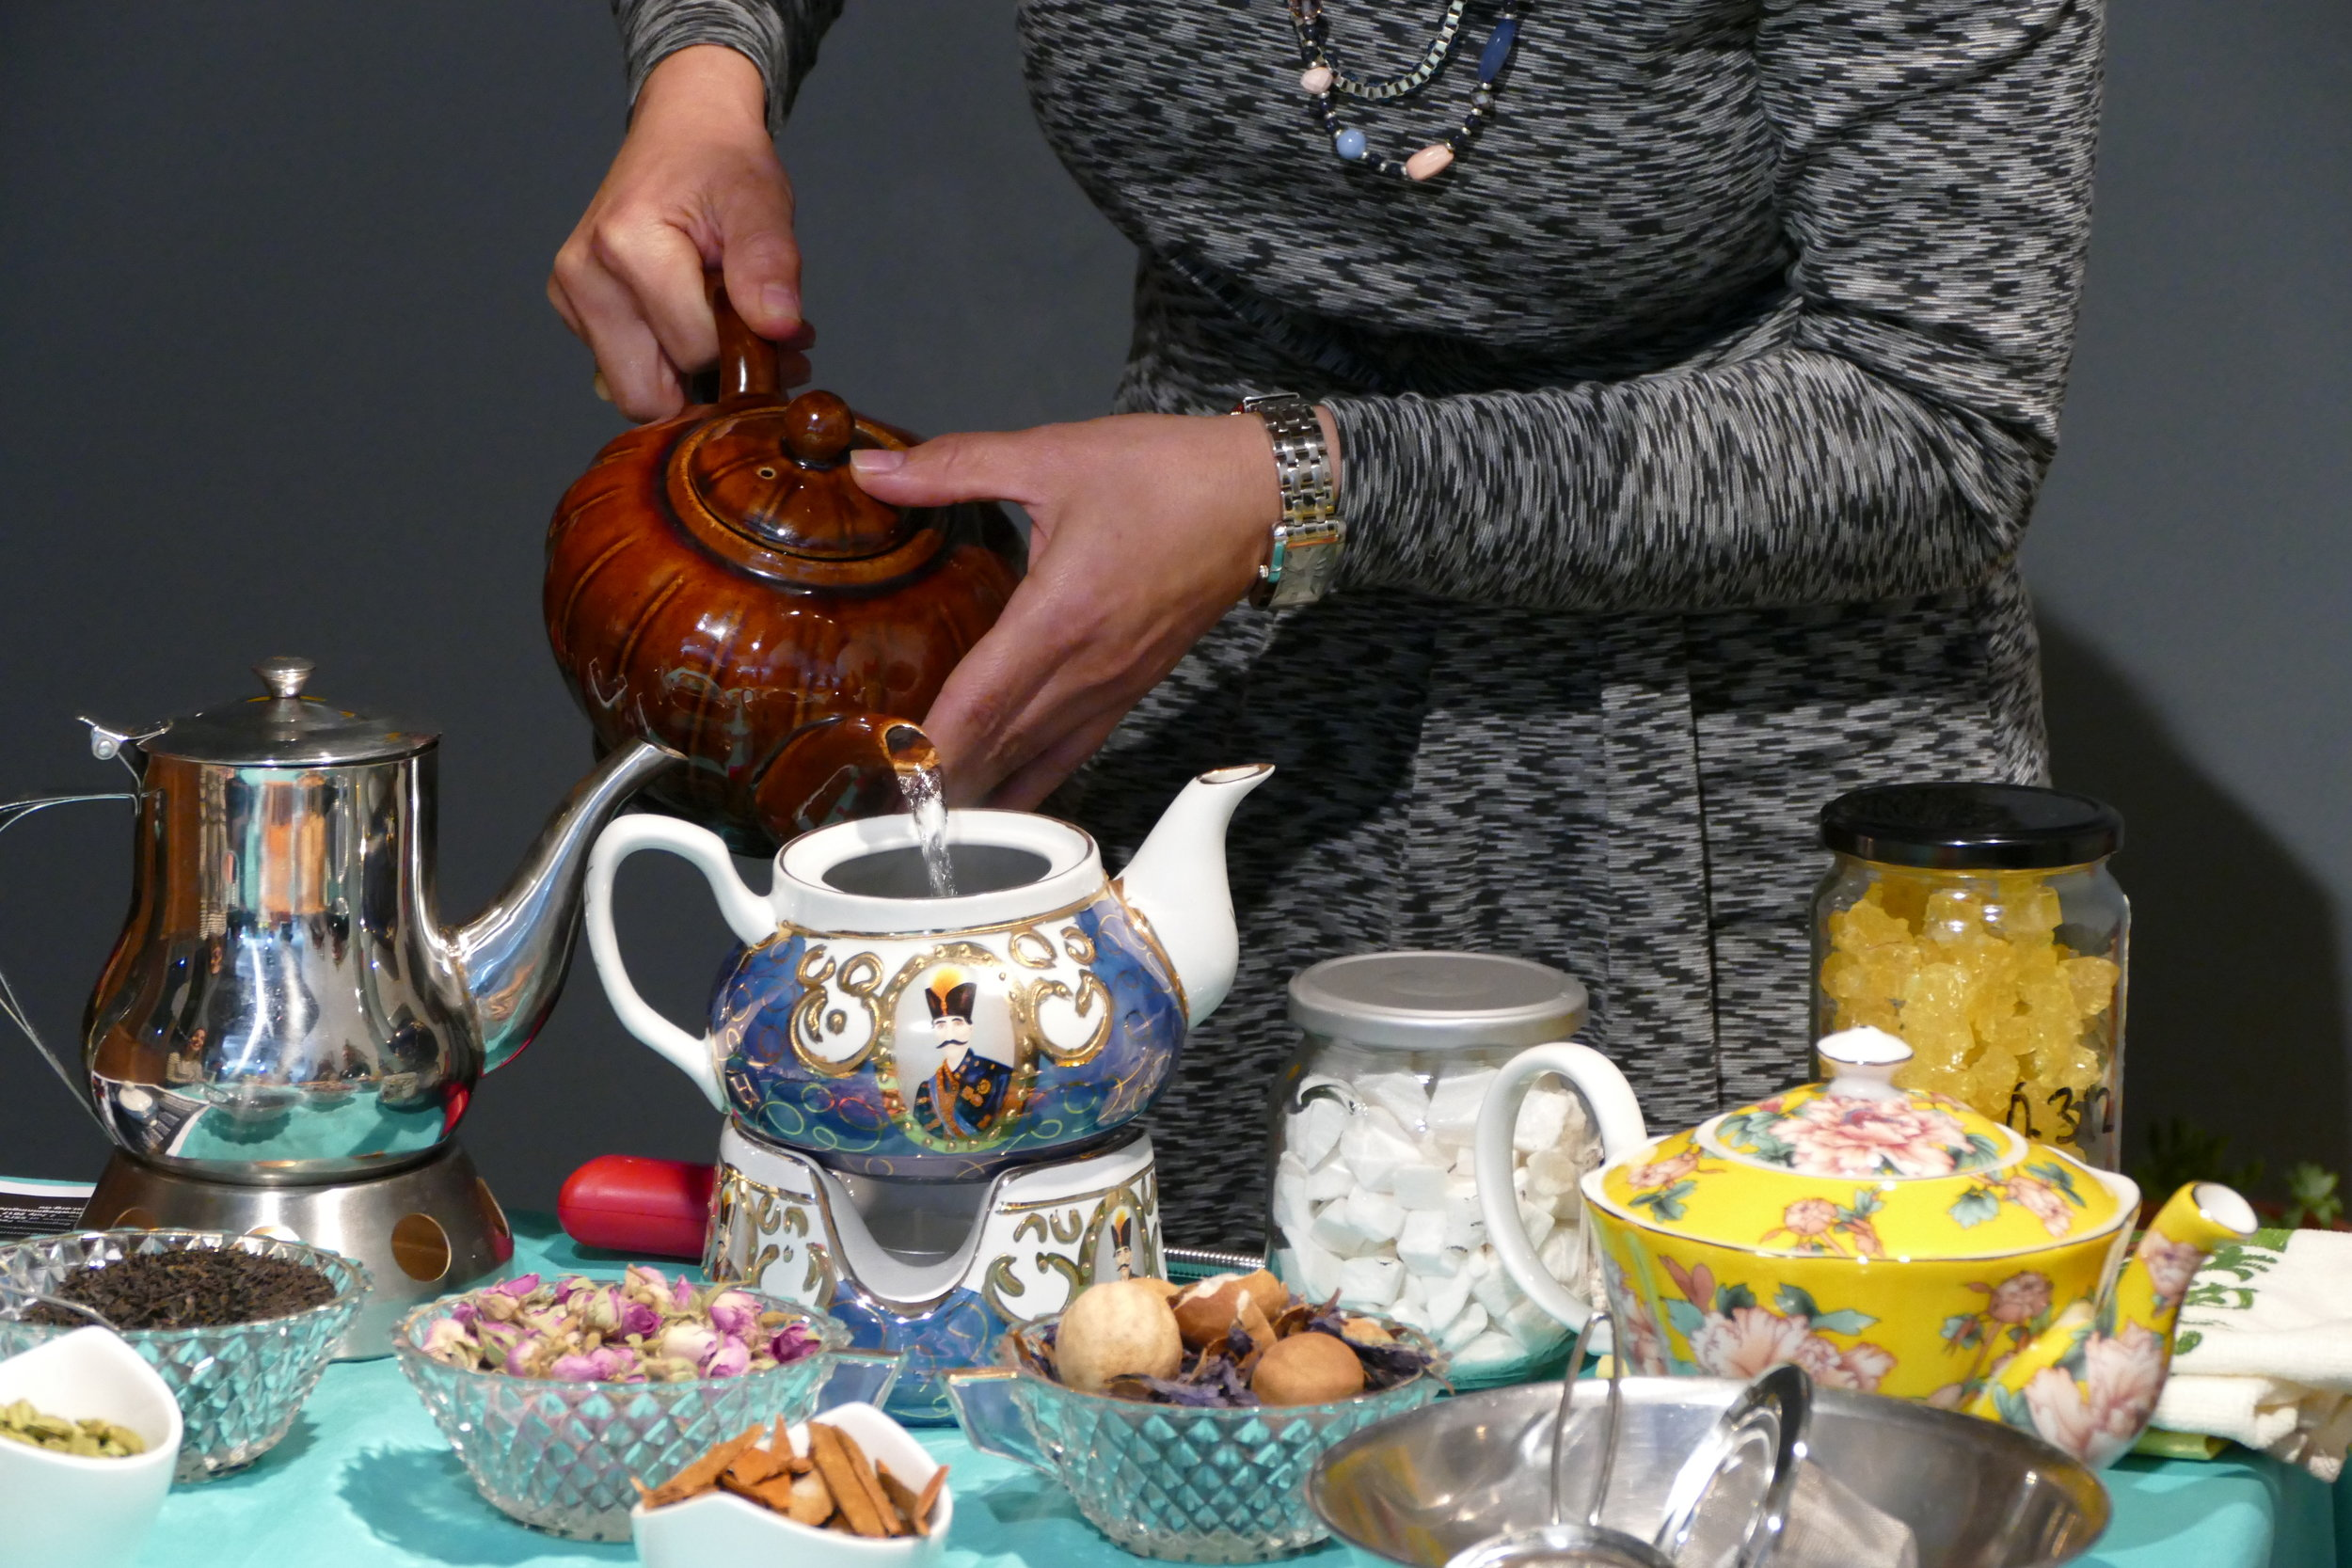 Ladan Haghighat pouring the tea for a booked-out Persian tea ceremony, organised by Community Kouzina as part of the New Beginnings Festival for Refugee Week.